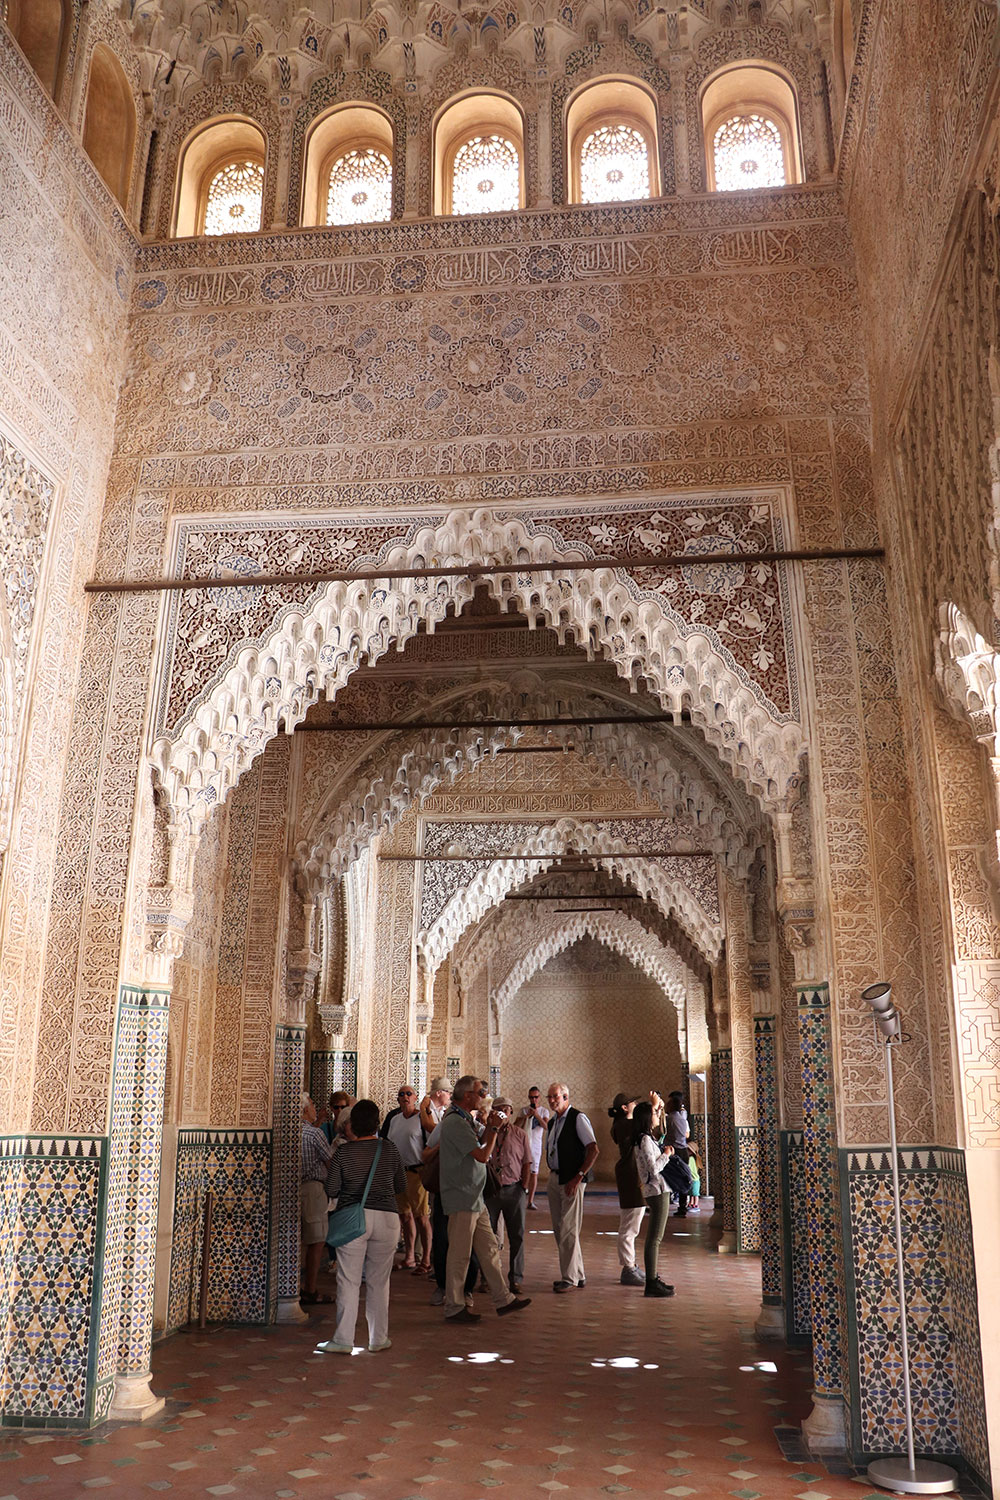 Hall of the Kings, Alhambra